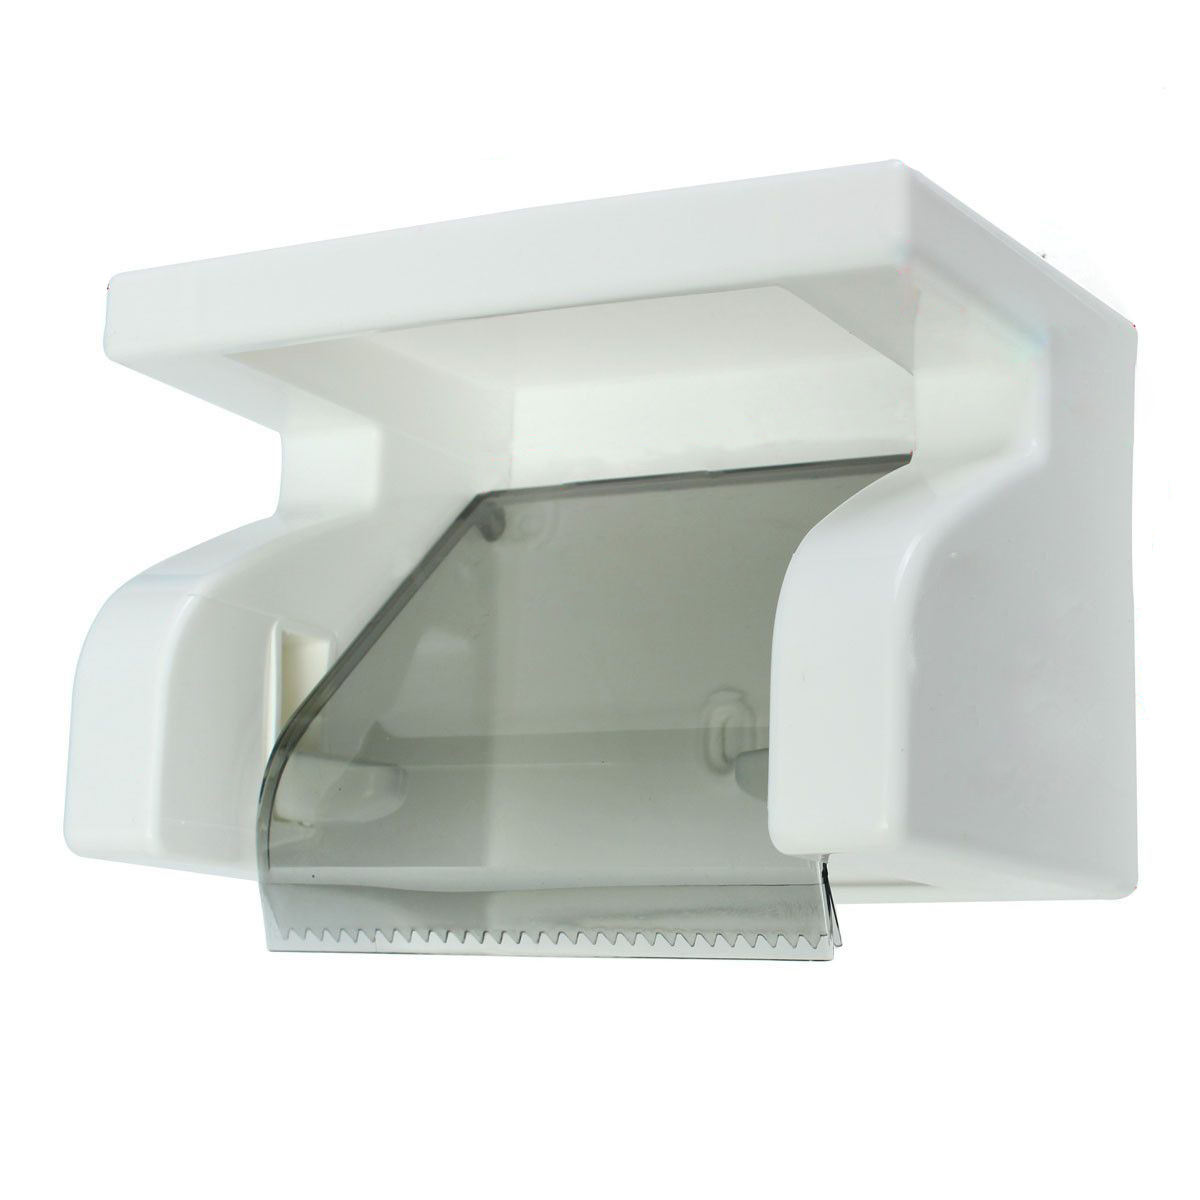 Waterproof Toilet Paper Holder Tissue Roll Stand Box With